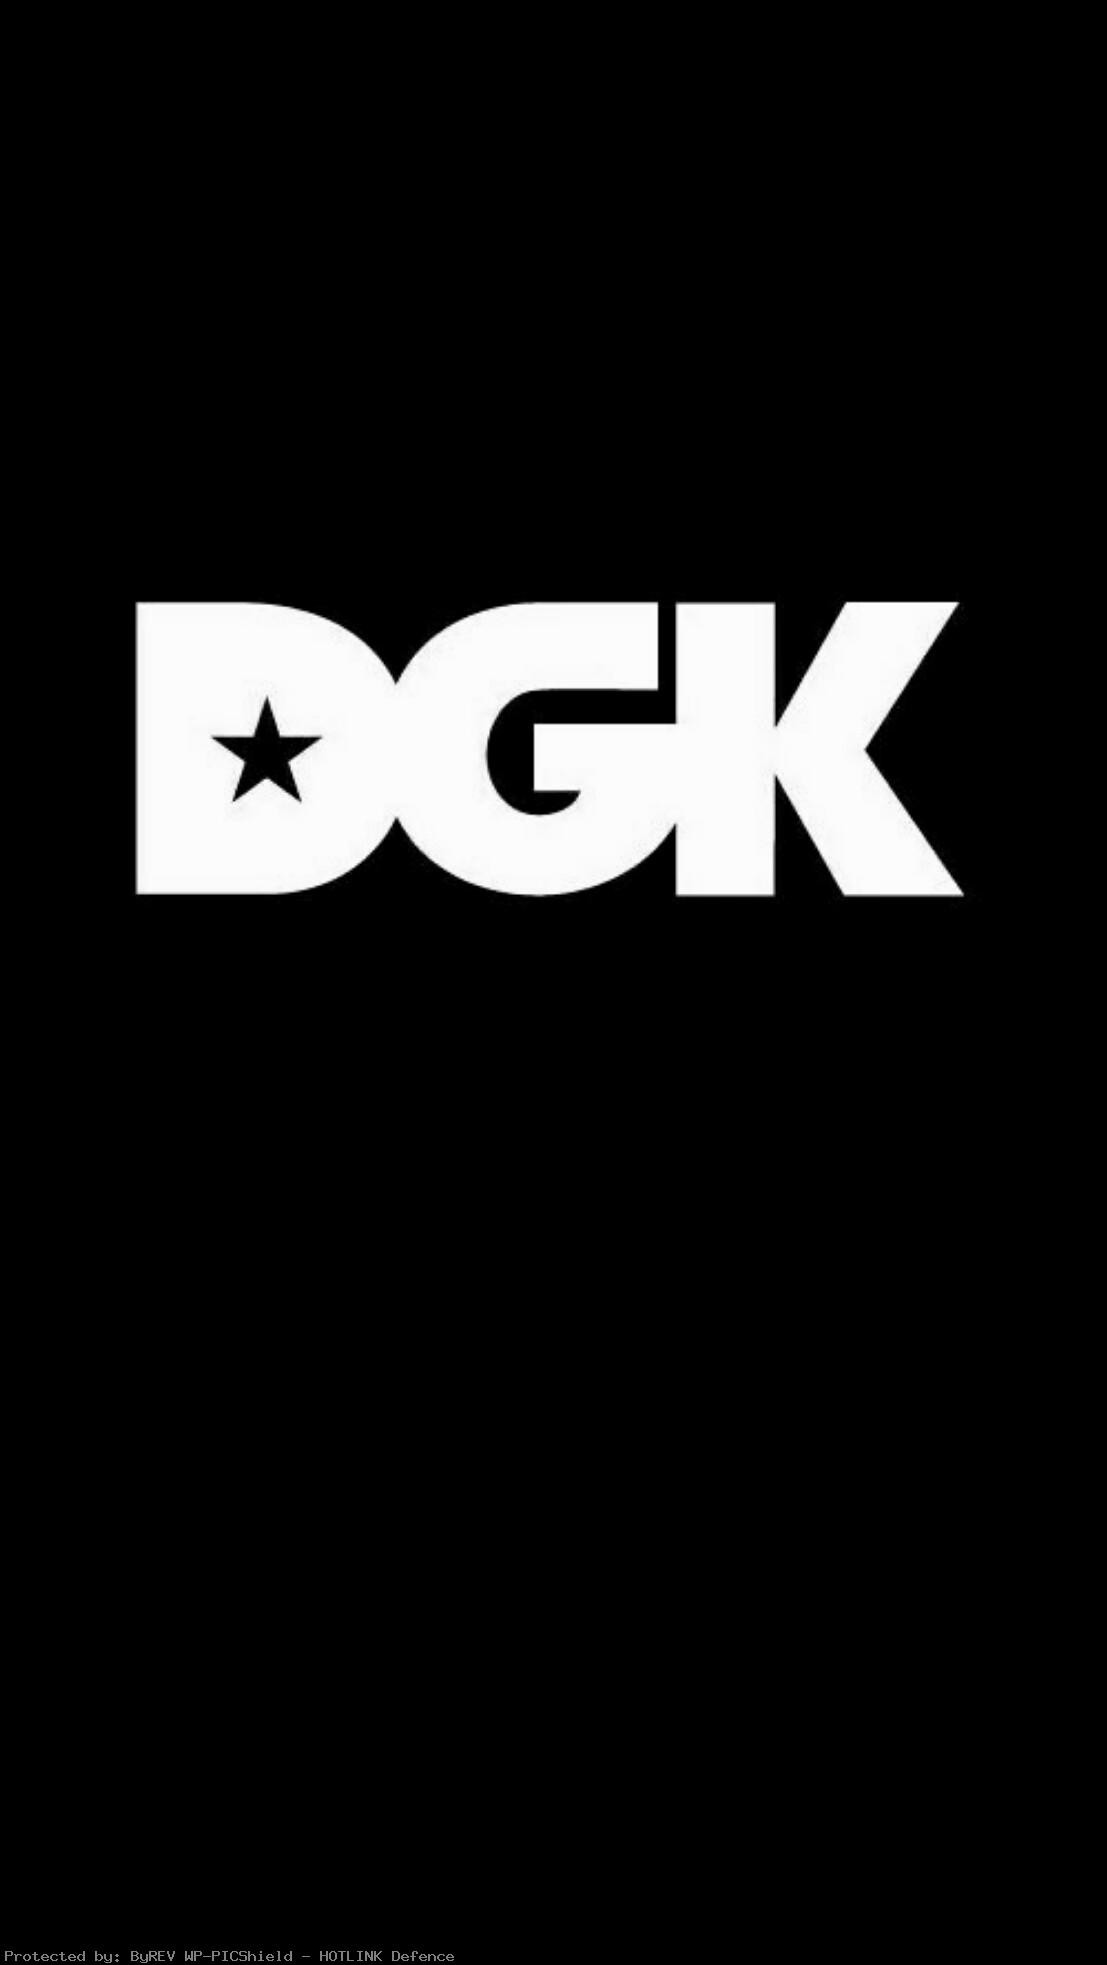 dgk-black-iPhone-android-wallpaper-wp4001151